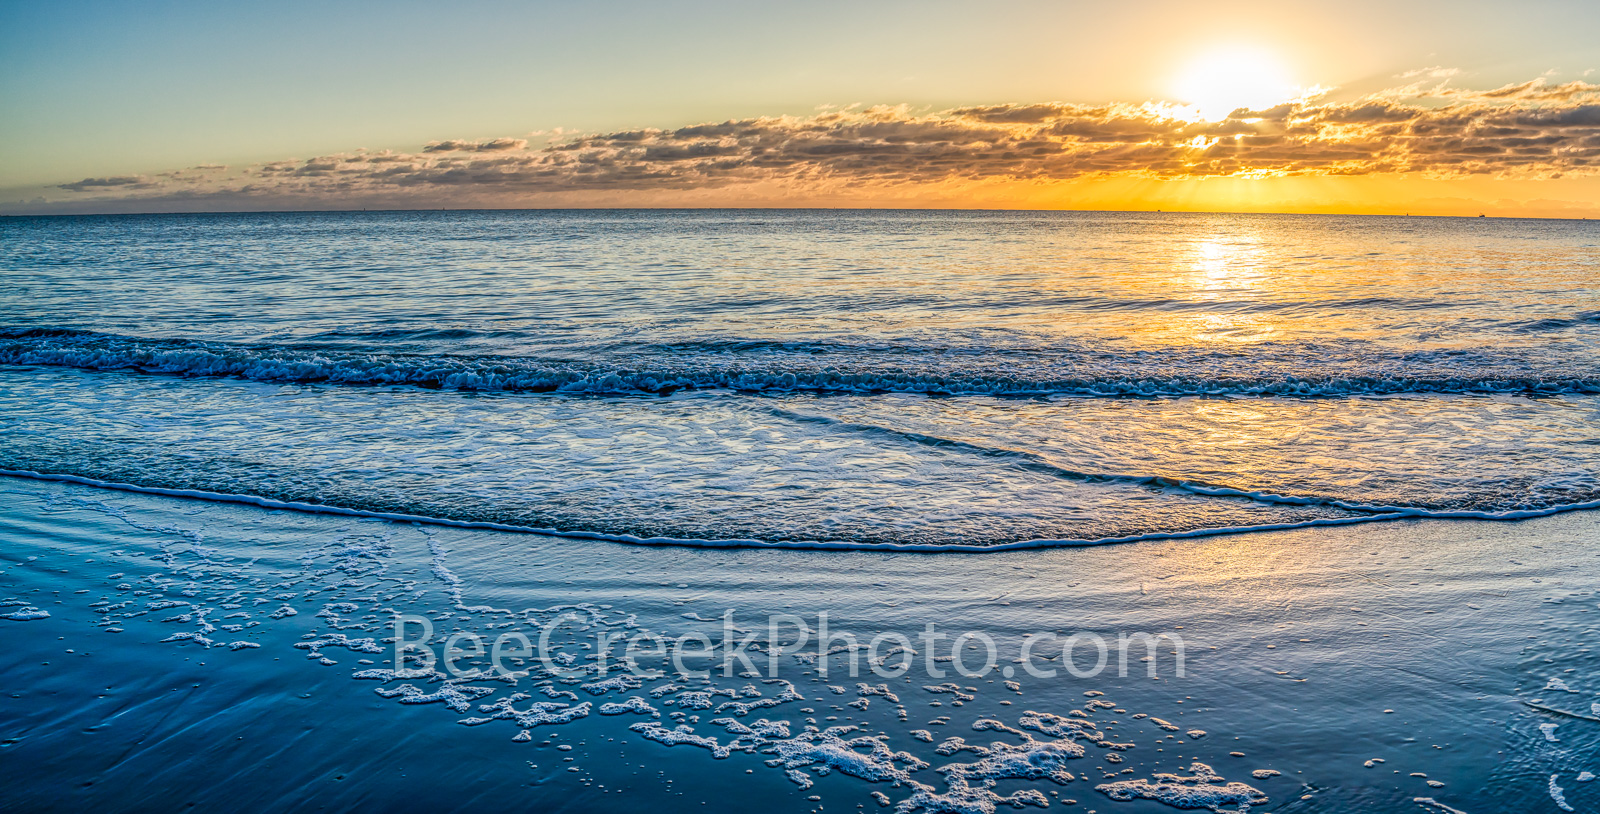 Ocean Serenity Pano - This wonderful seascape taken in early morning right after sunrise presented a nice golden glow over the...